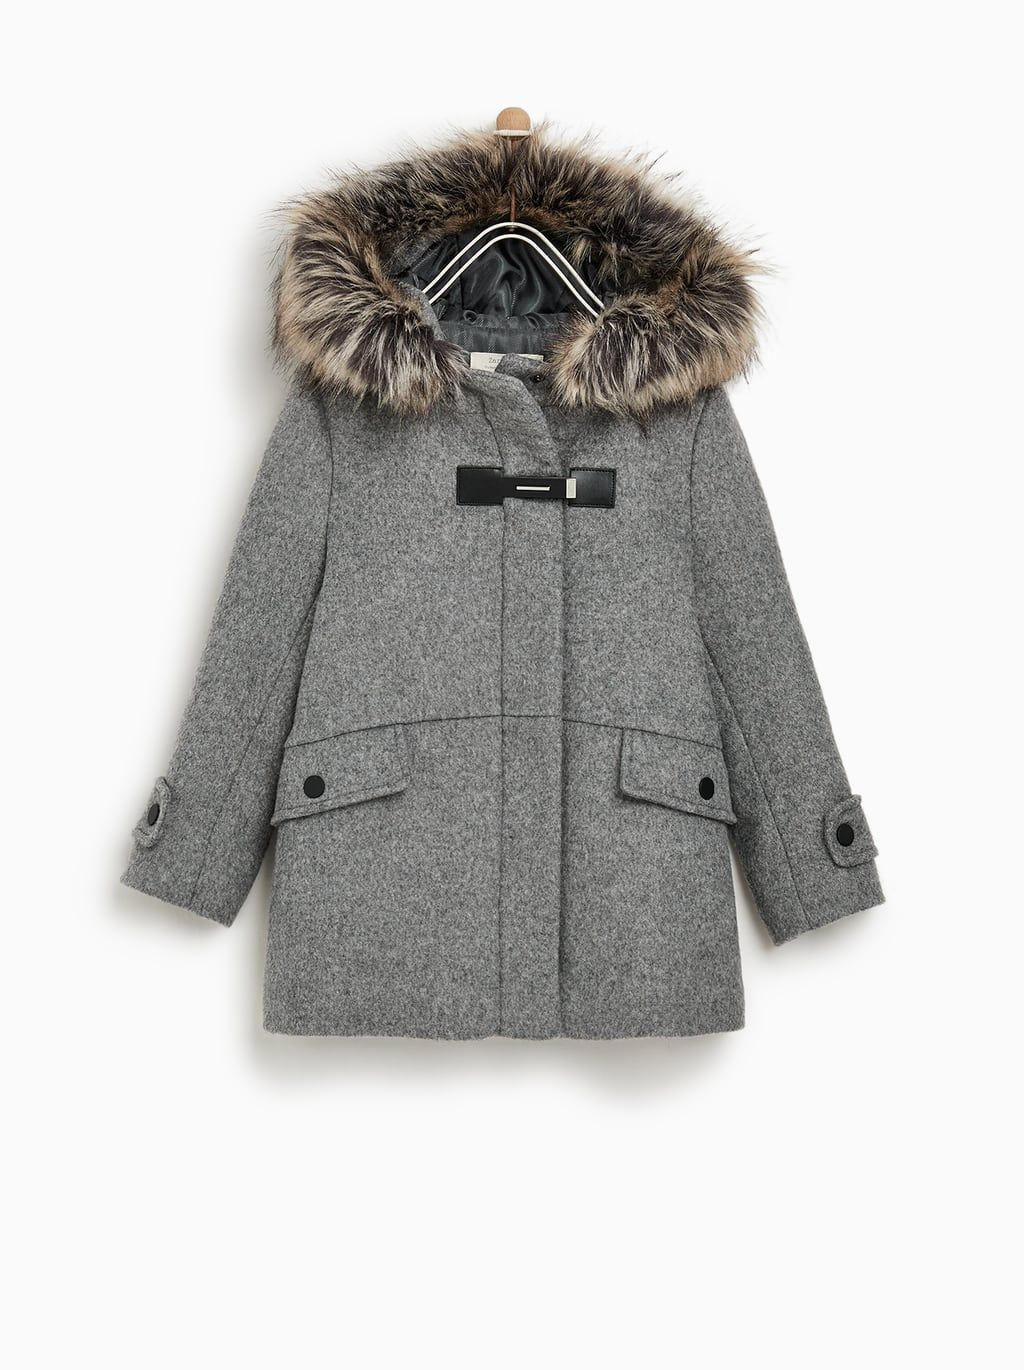 435346ac Image 1 of FAUX FUR HOODED DUFFLE COAT from Zara | Olivia's ...